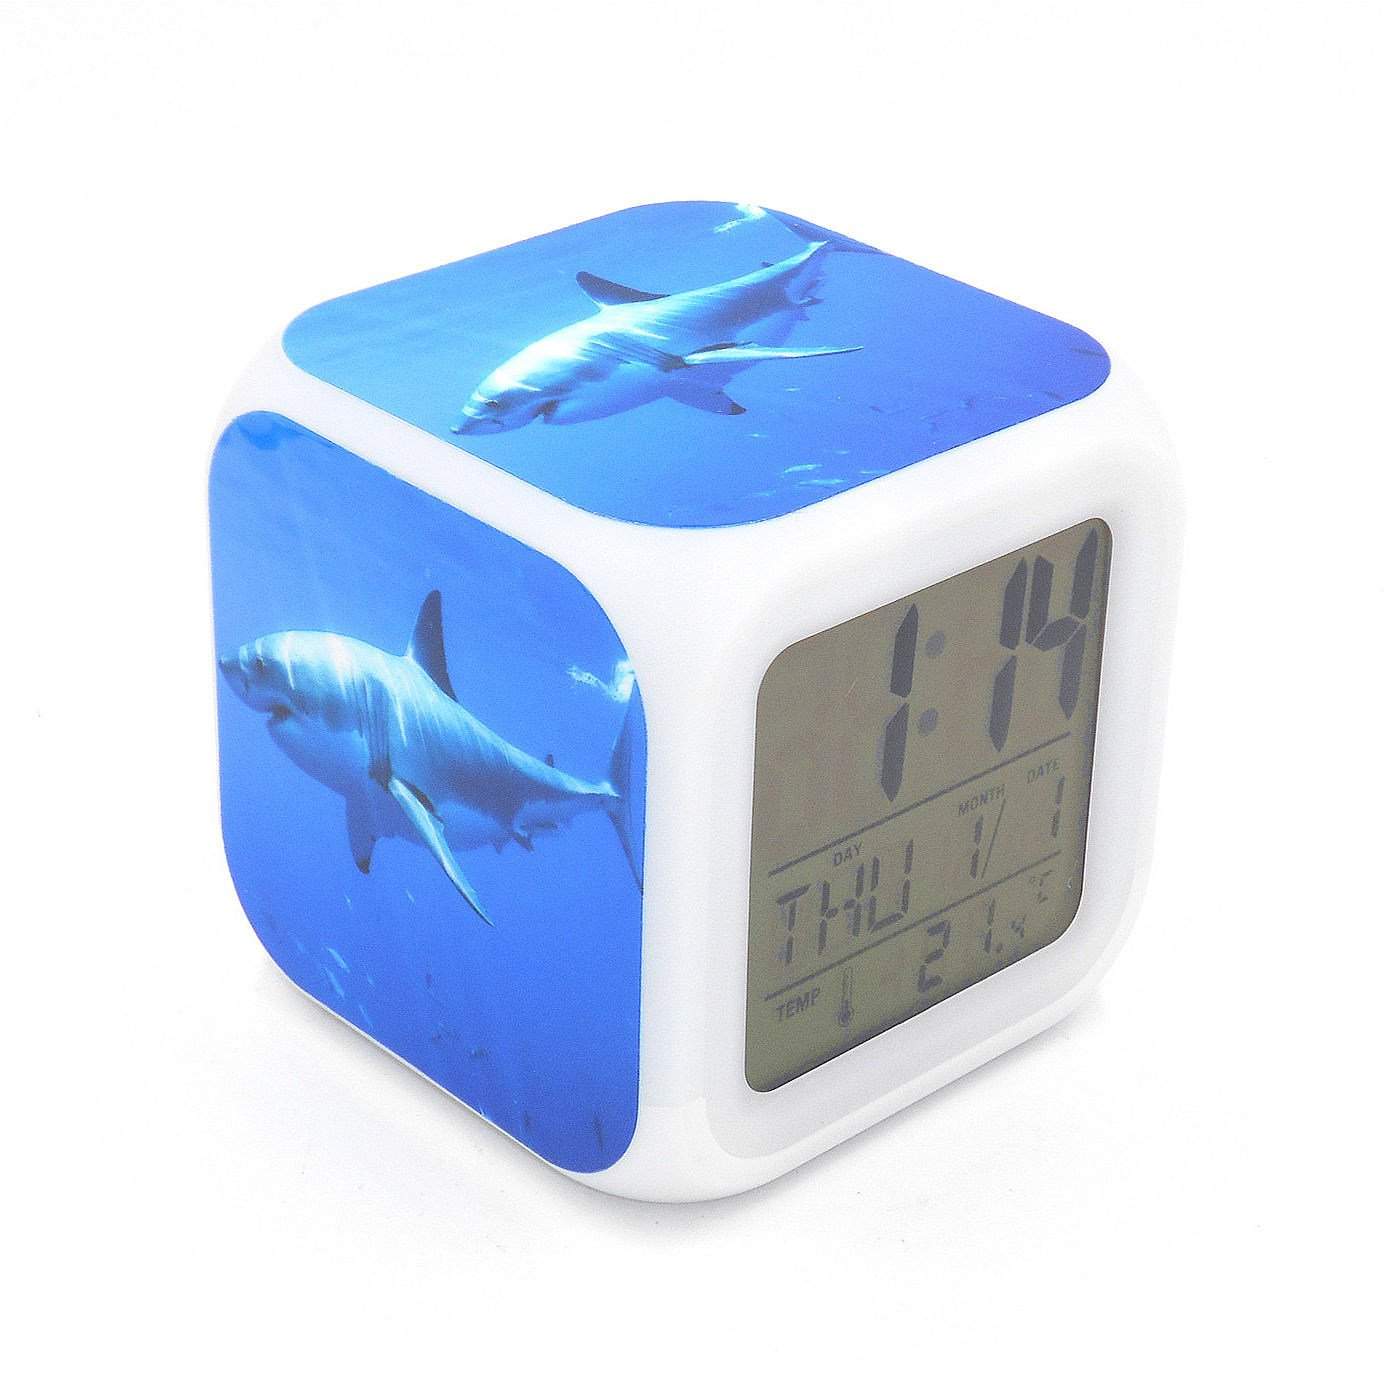 EGS New Great White Shark Ocean Animal Digital Alarm Clock Desk Table Led Alarm Clock Creative Personalized Multifunctional Battery Alarm Clock Special Toy Gift for Unisex Kids Adults